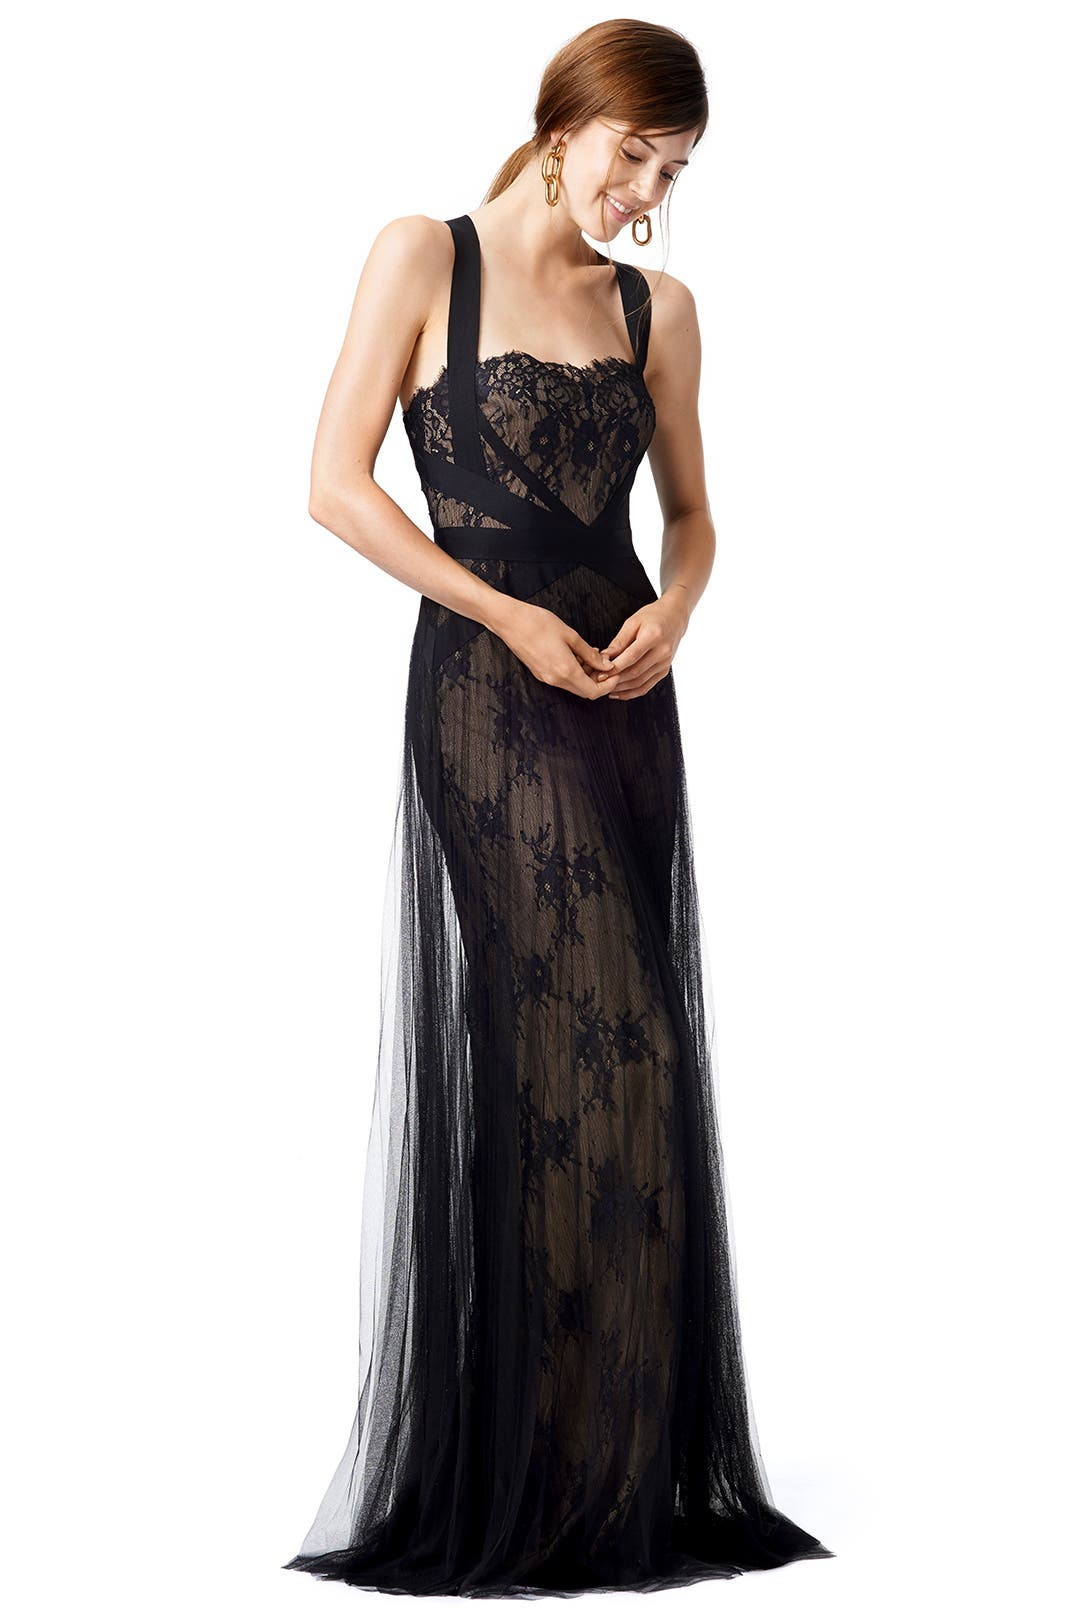 847e95cfb346e Over Again Gown by Marchesa Notte for  259